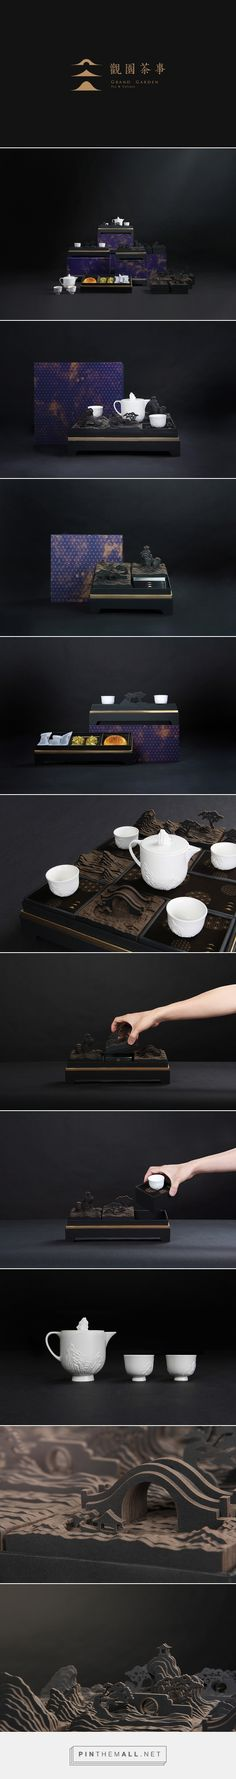 Grand Garden / 觀園茶事 on Behance curated by Packaging Diva PD. Lovely gift idea and matching packaging created via https://www.behance.net/gallery/16247227/Grand-Garden-